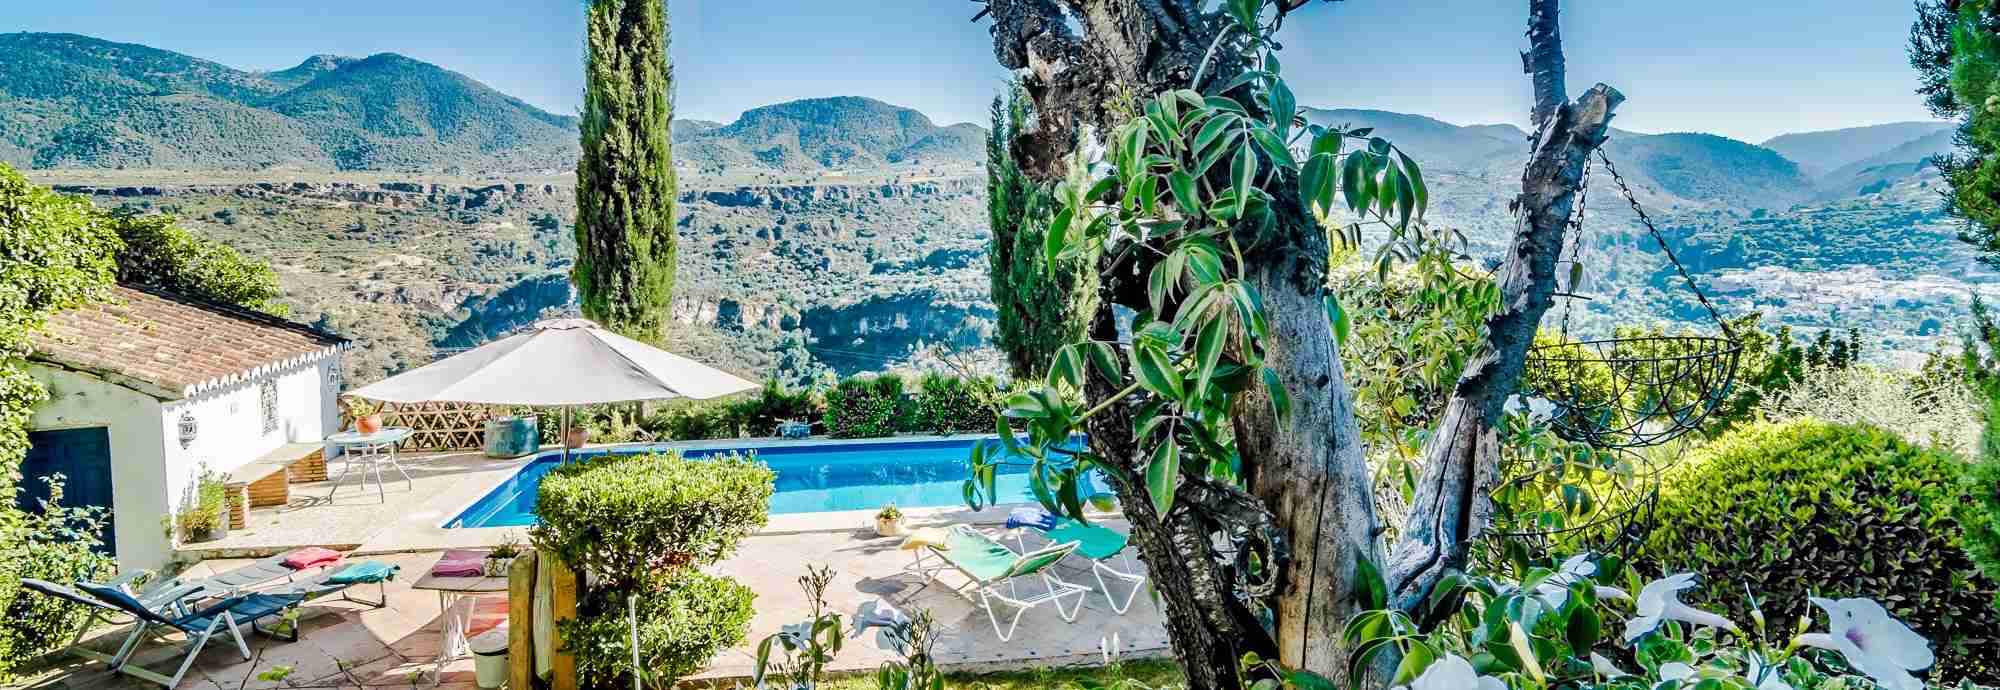 Granada villa rental with private pool in a semi-tropical valley